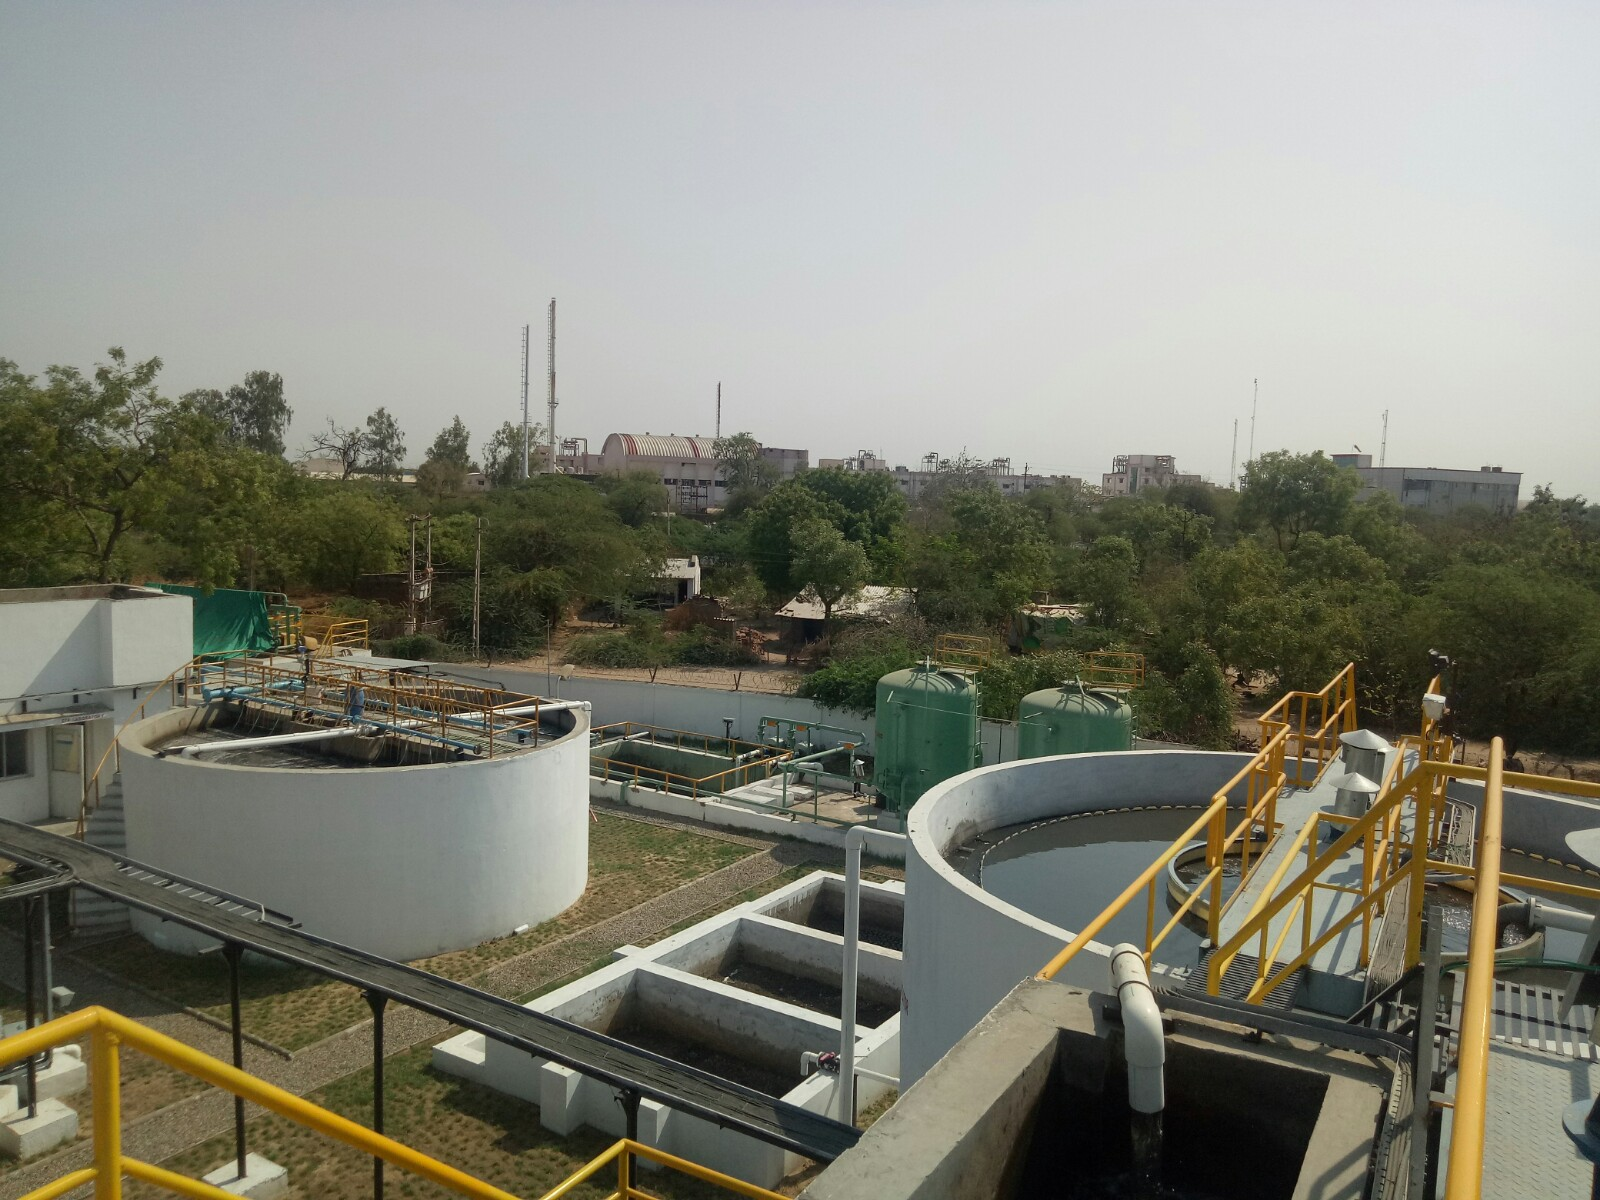 Cadila Pharmaceuticals Ltd upgrades their Effluent Treatment Plant (ETP) at Dholka to  Supervisory Control and Data Acquisition(SCADA